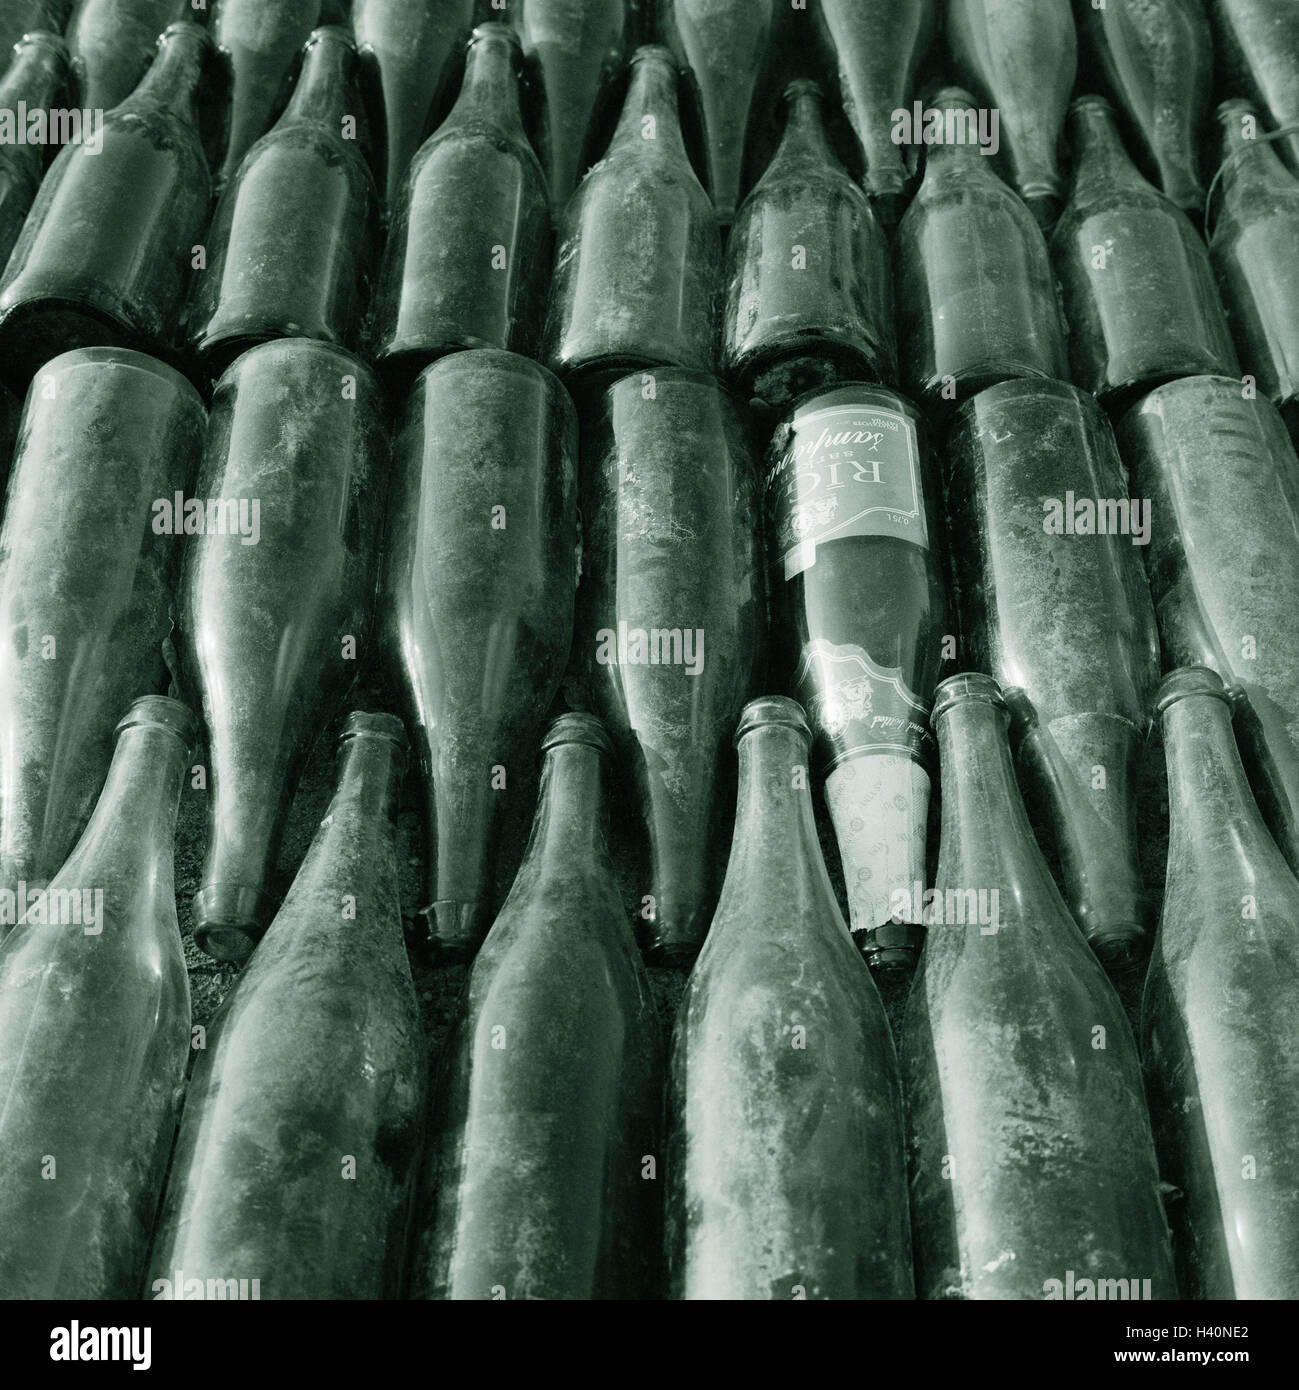 Old glass, Sparkling Wine Bottles, ordered, detail, environment protection, recycling, recycling, re-use, Bottles, - Stock Image